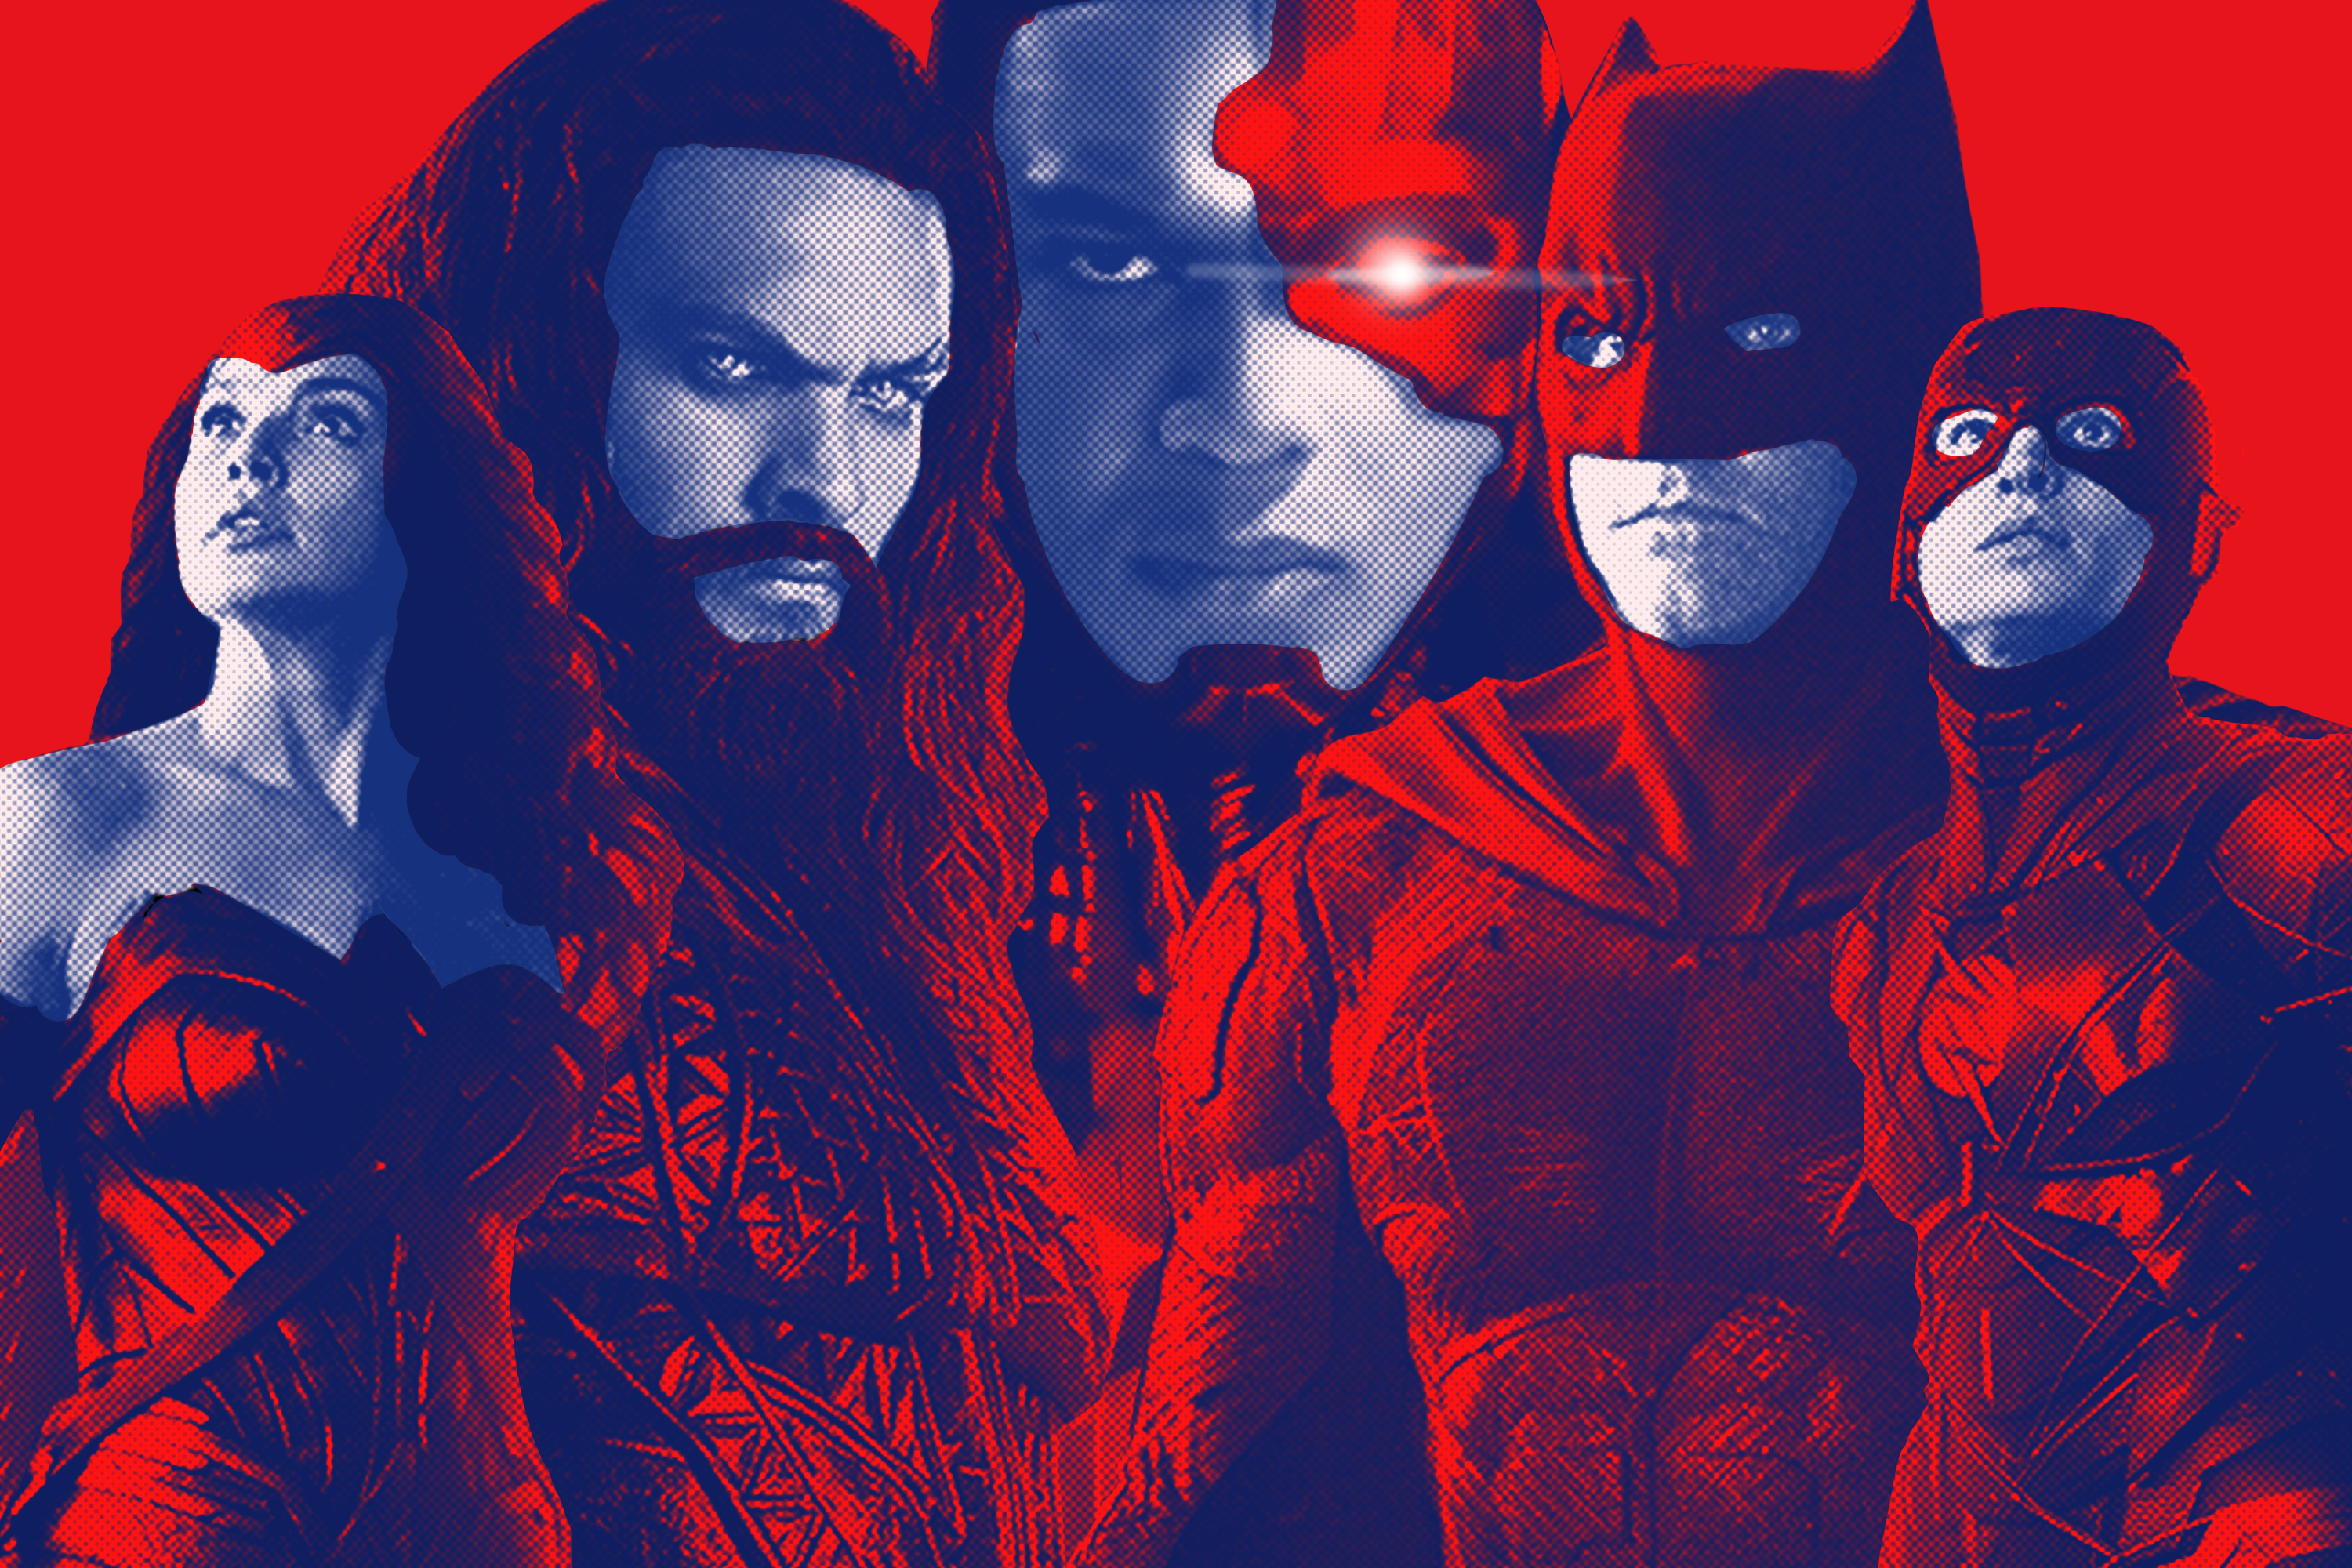 A collage of Wonder Woman, Aquaman, Cyborg, Batman, and the Flash from 'Justice League'